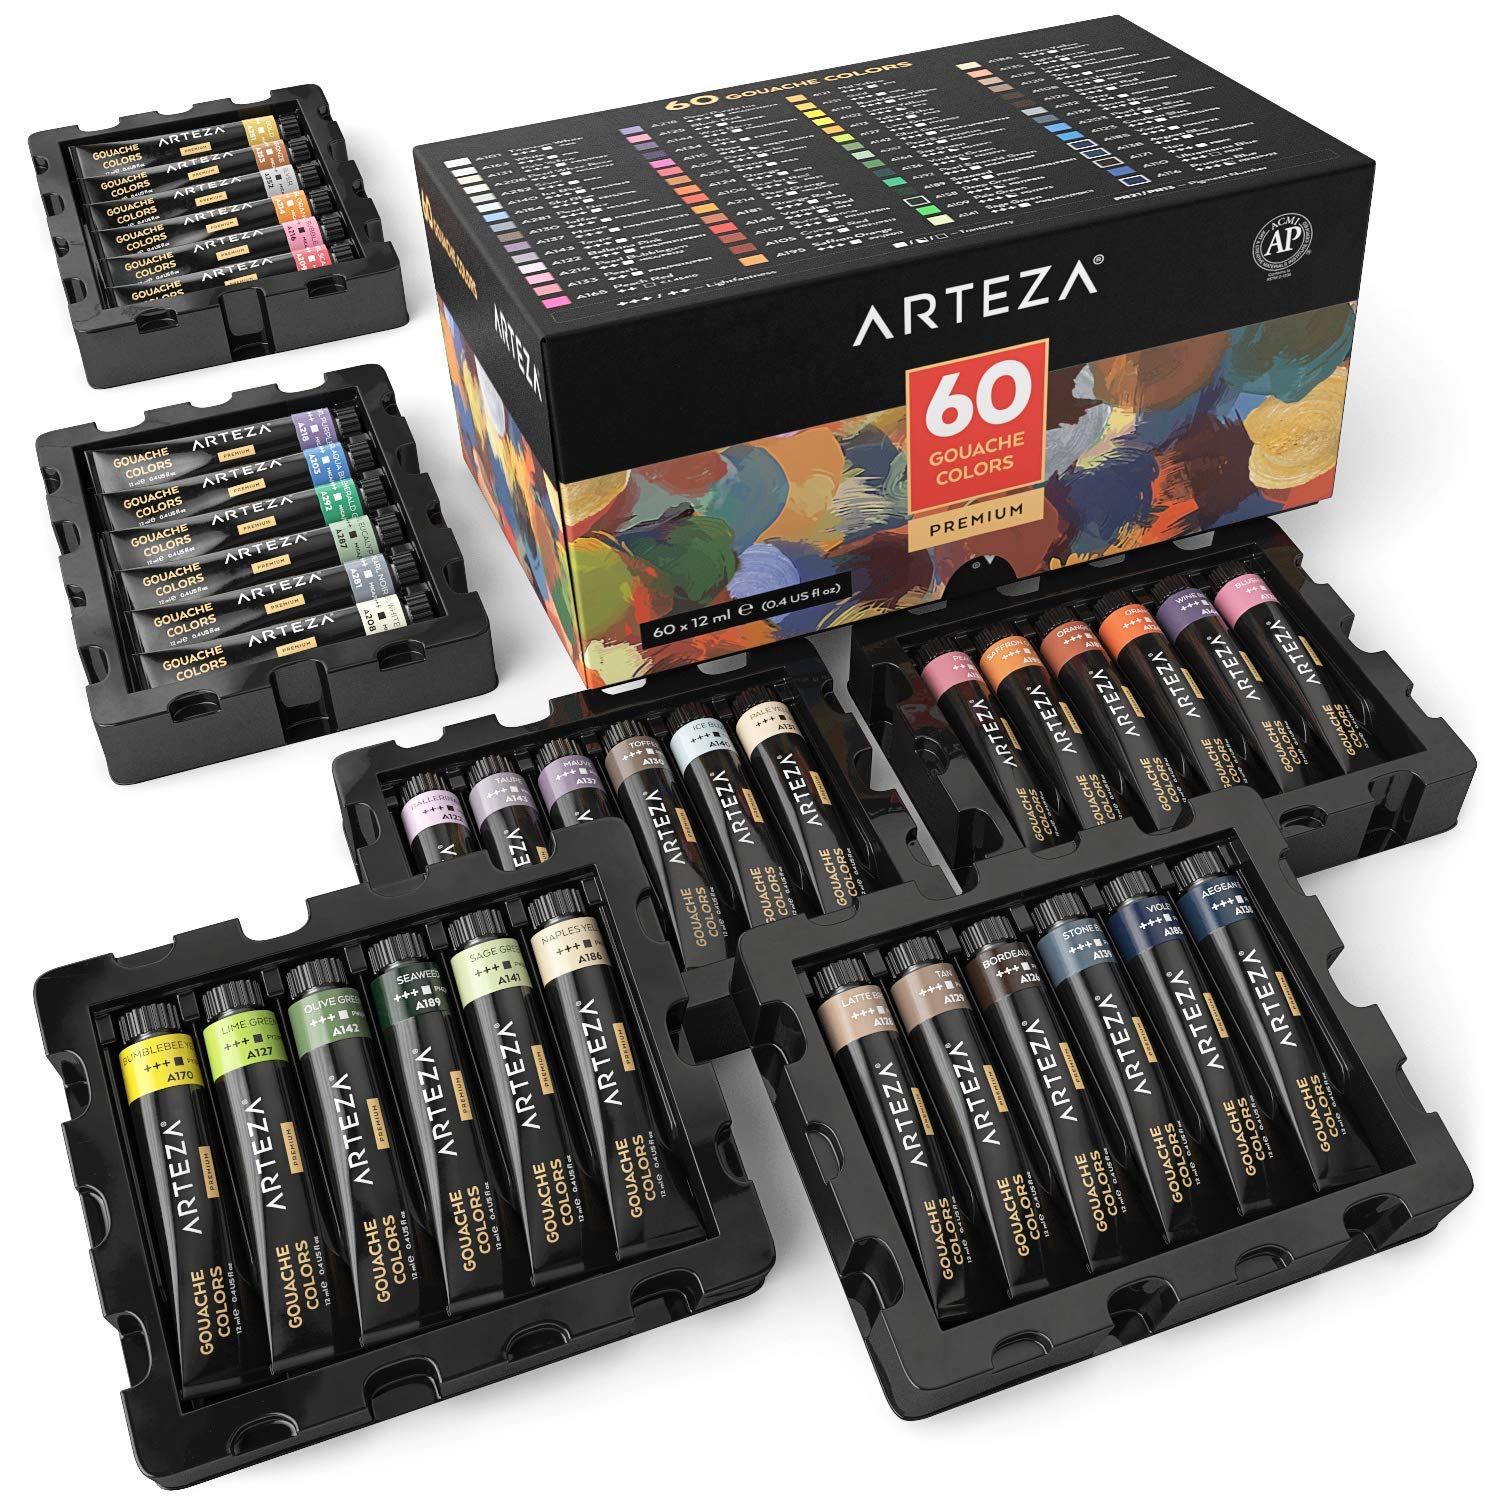 ARTEZA Gouache 60 colores (12ml), ideal para Canvas